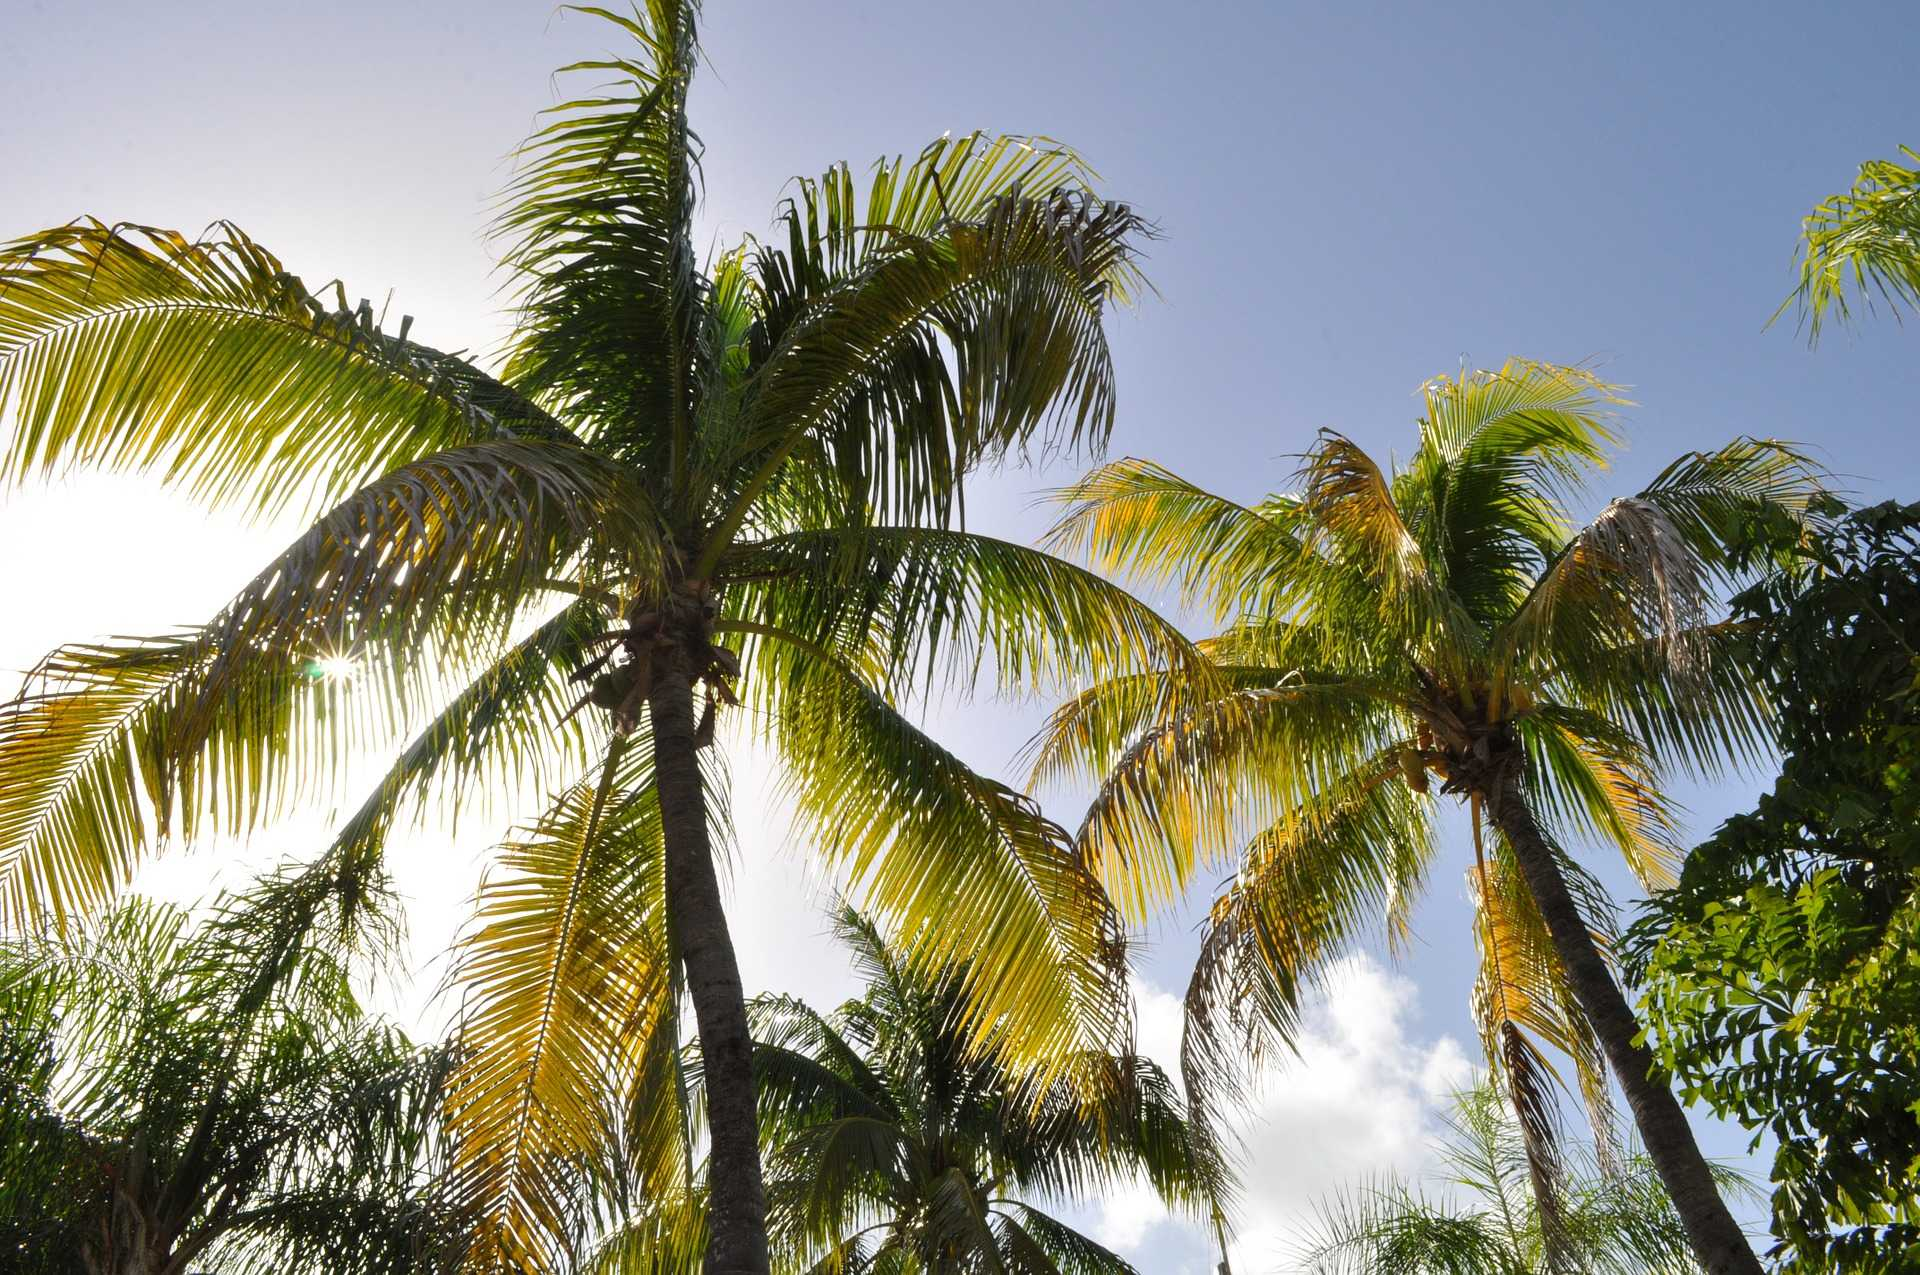 original_coconut-trees-1172459_1920